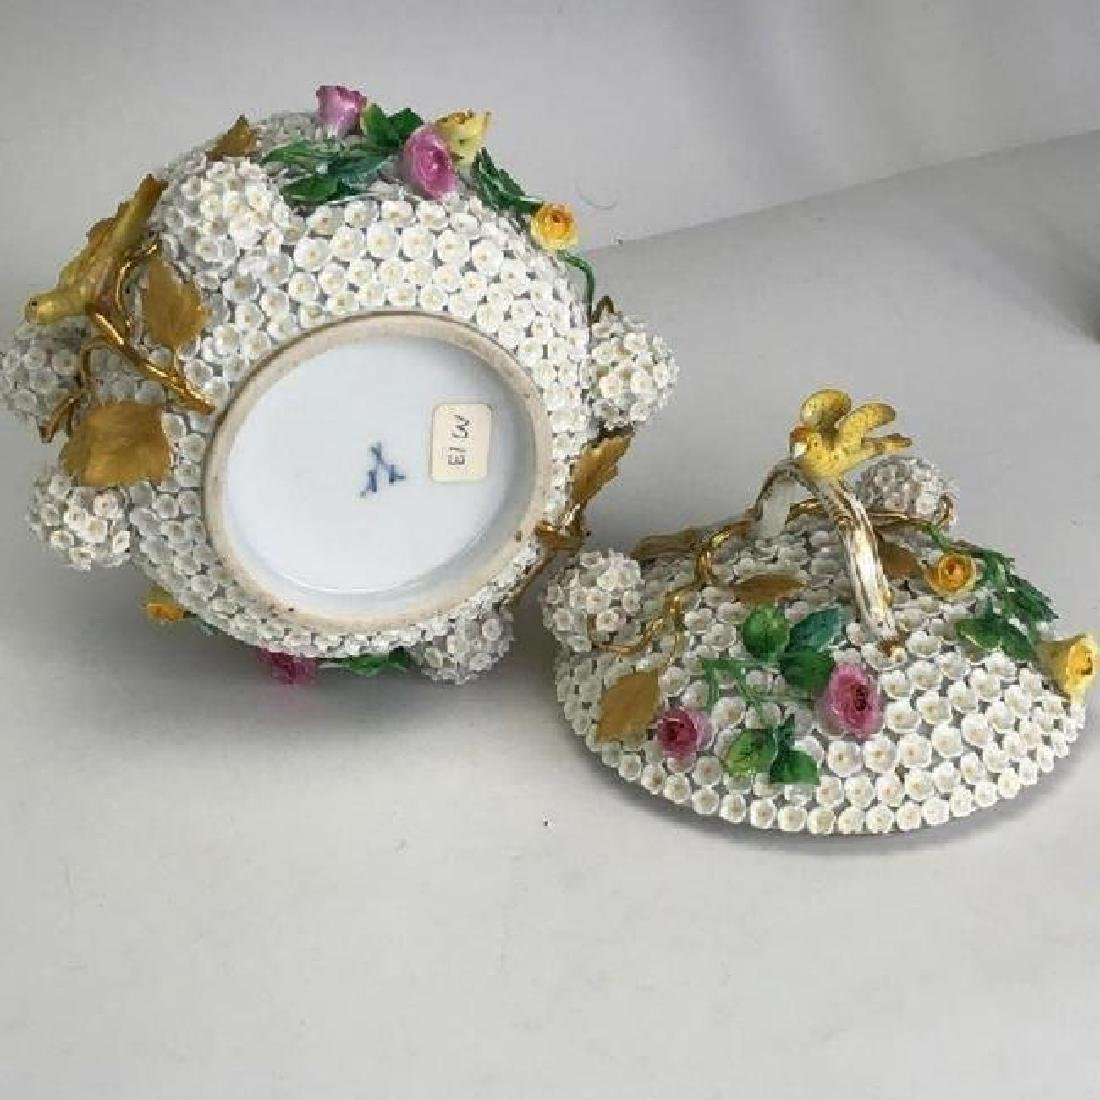 19TH C. MEISSEN SNOWBALL BOWL AND COVER - 2